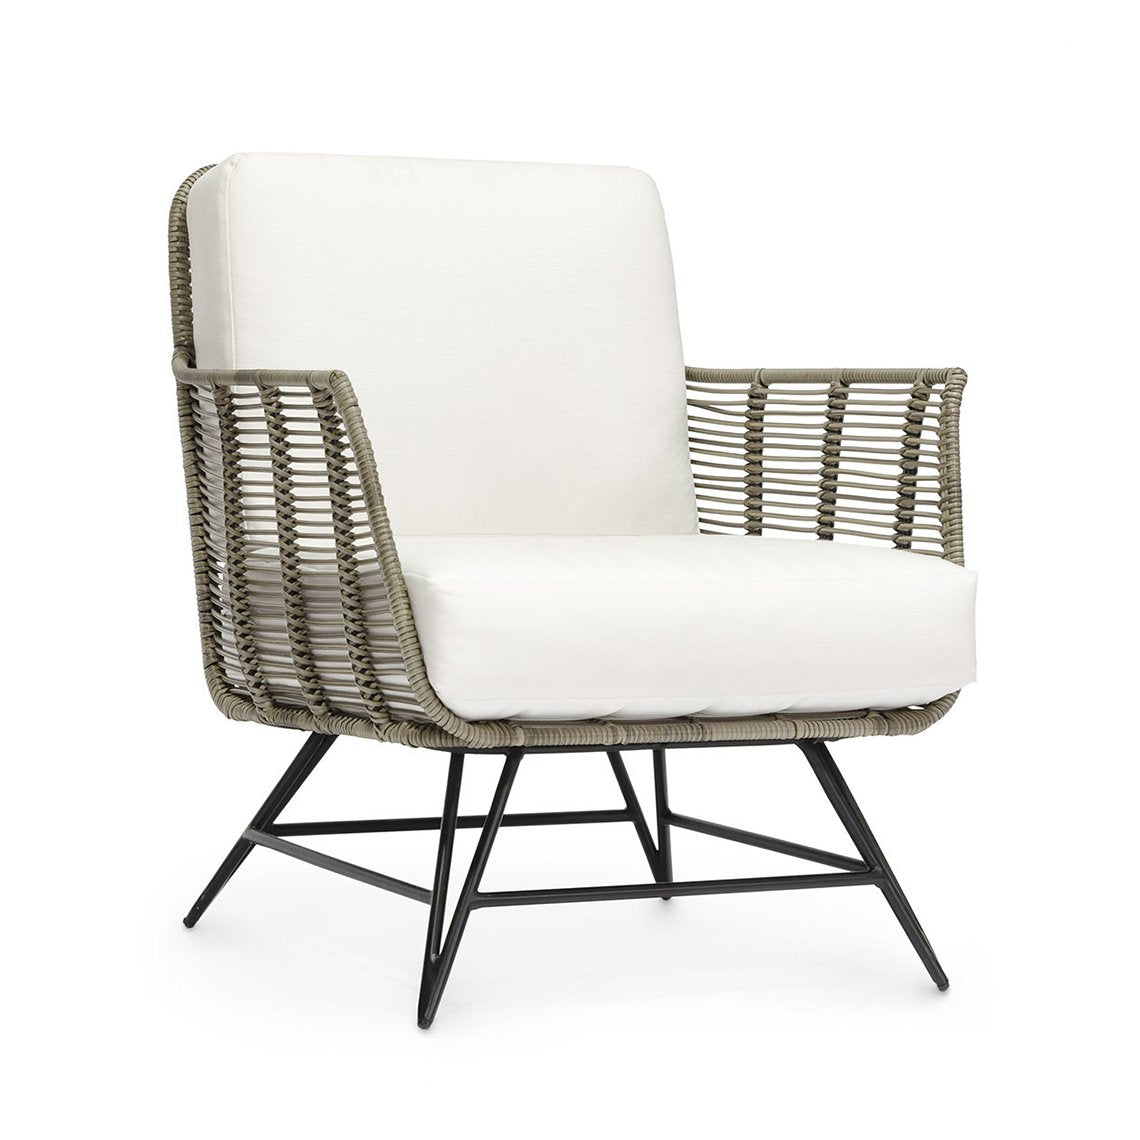 Hermosa Outdoor Lounge Chair, Grey